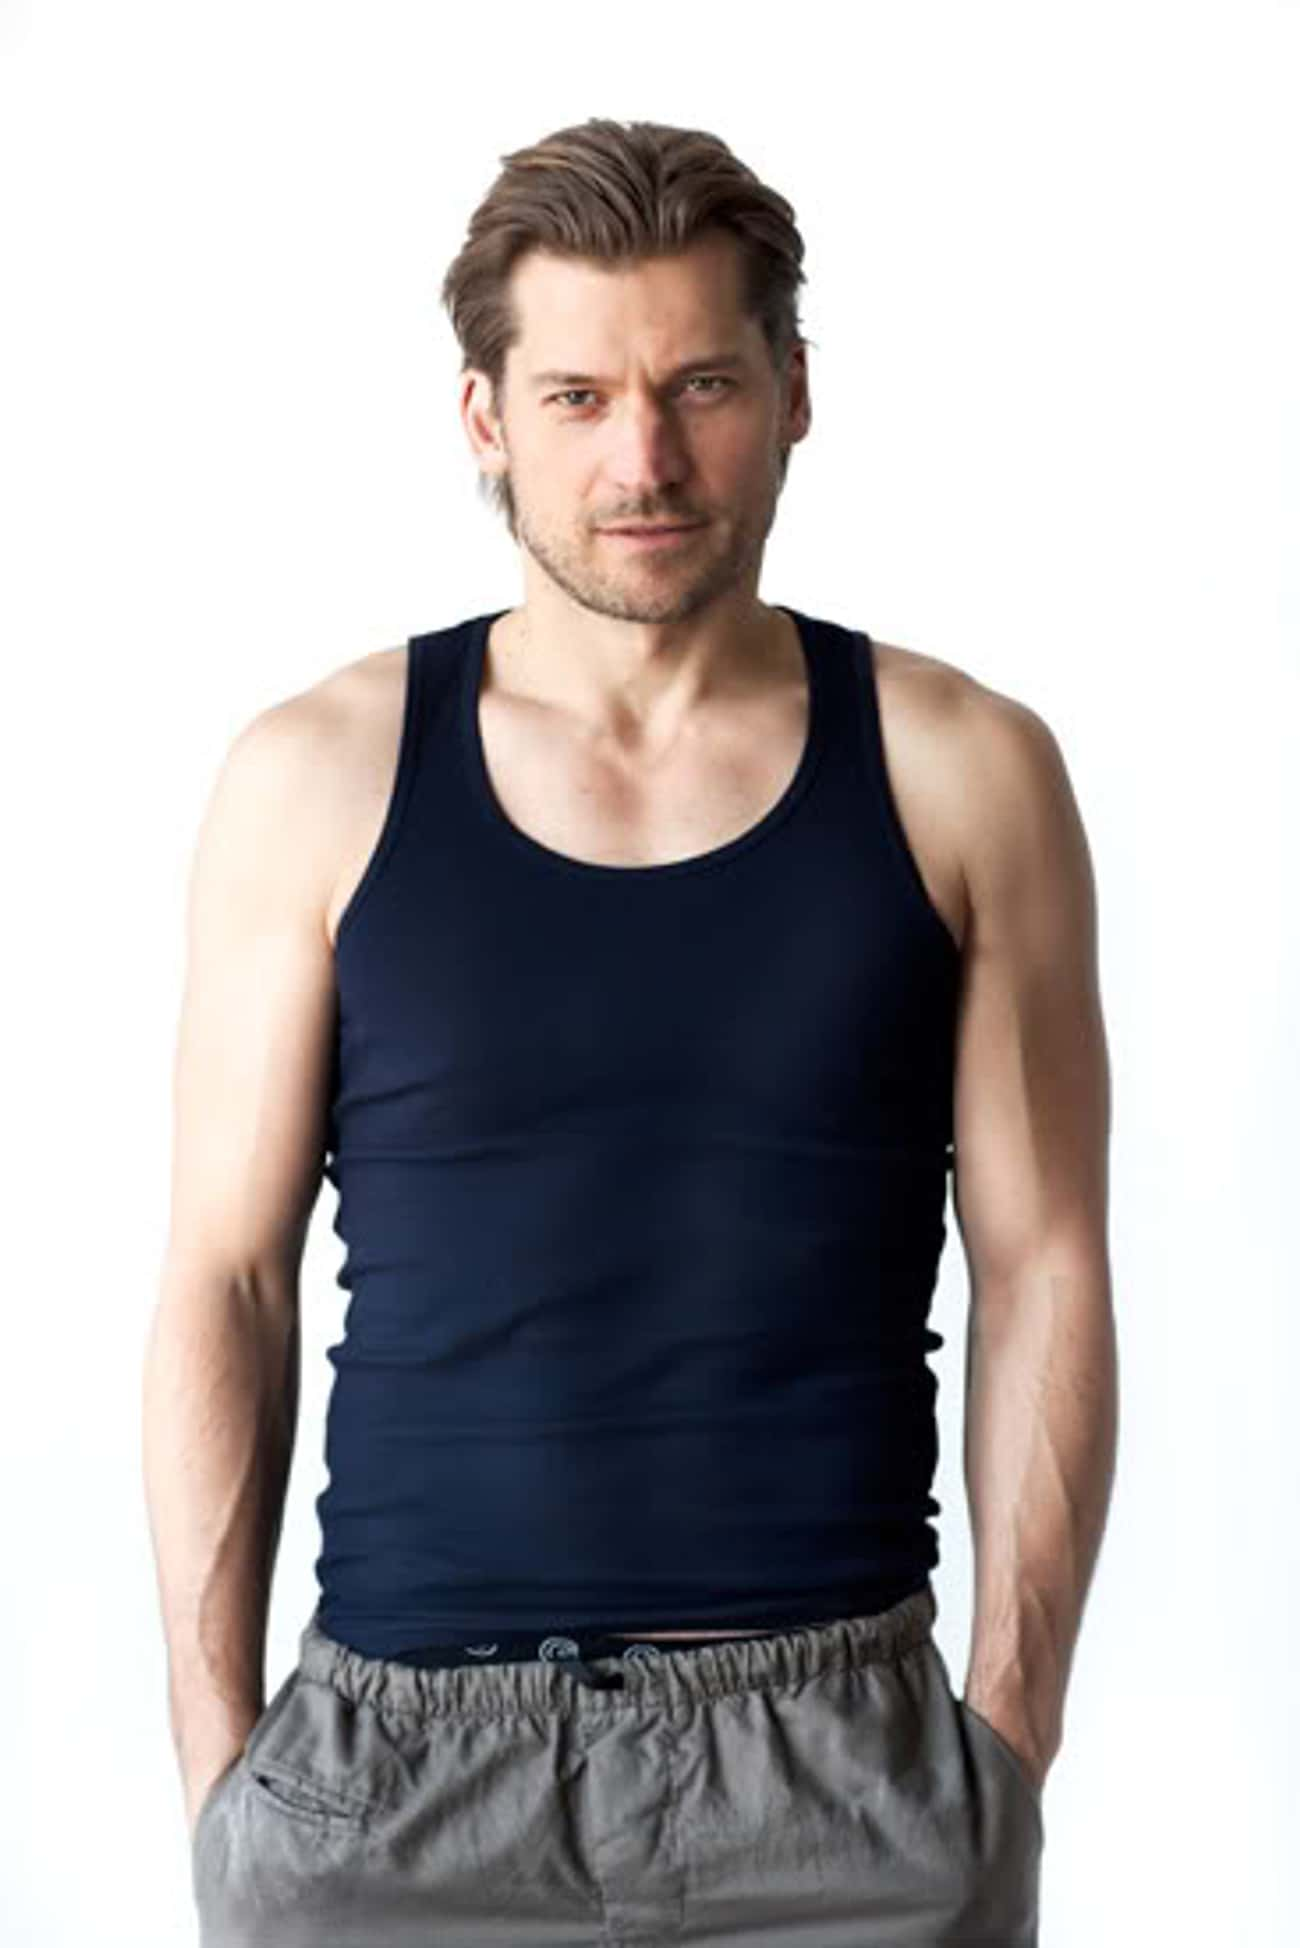 Nikolaj Coster-Waldau in Cotto is listed (or ranked) 2 on the list Hot Nikolaj Coster-Waldau Photos